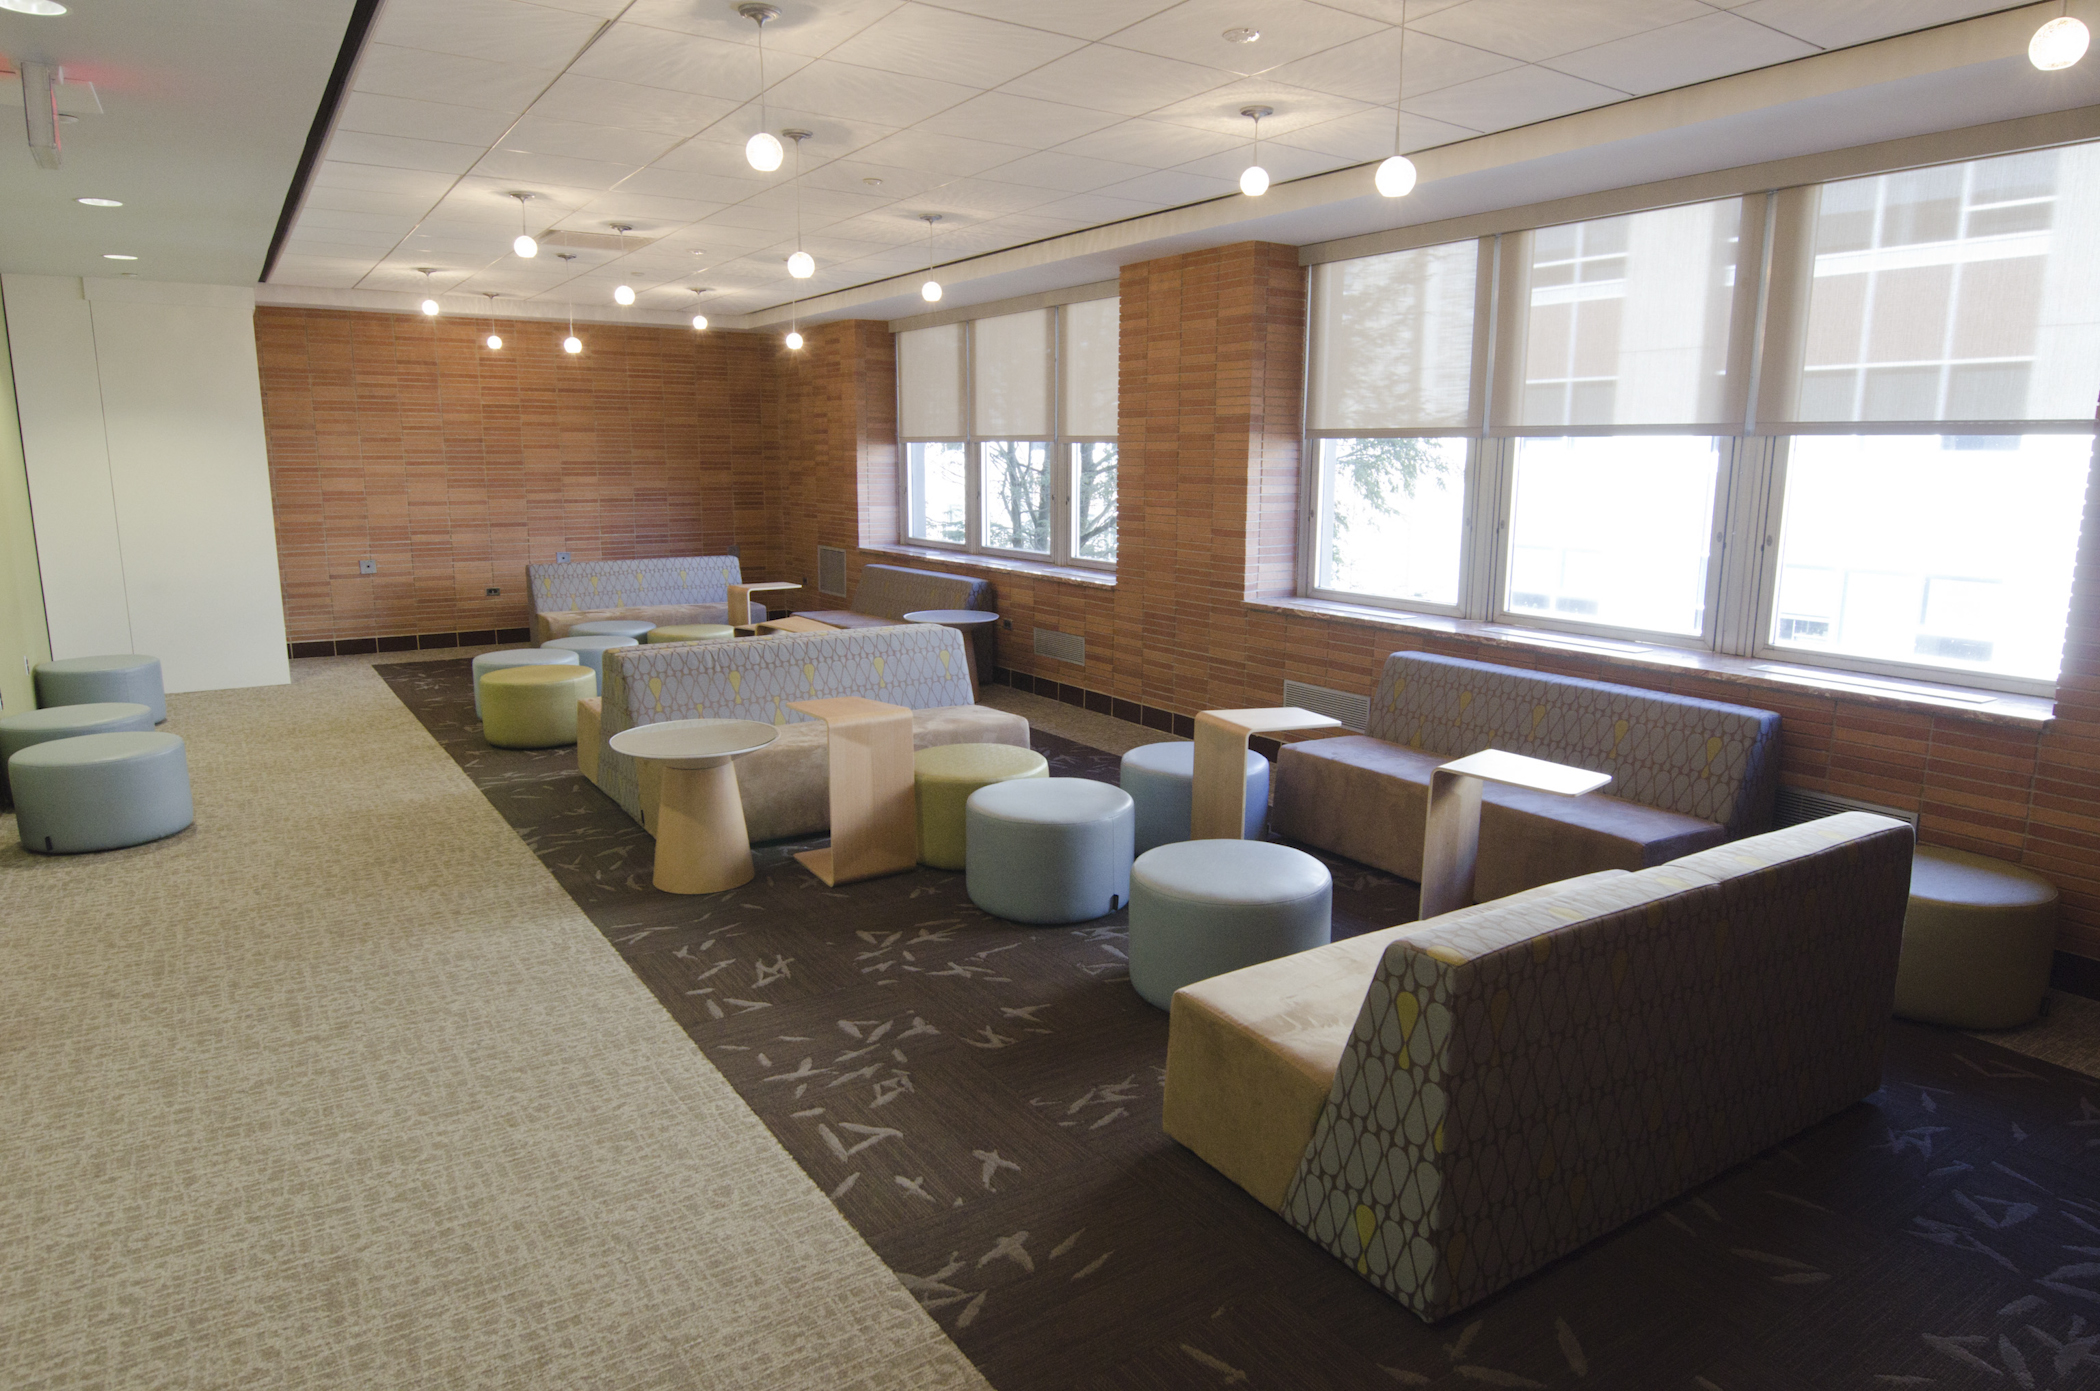 2015 - 04 Apr - Learning Commons-6